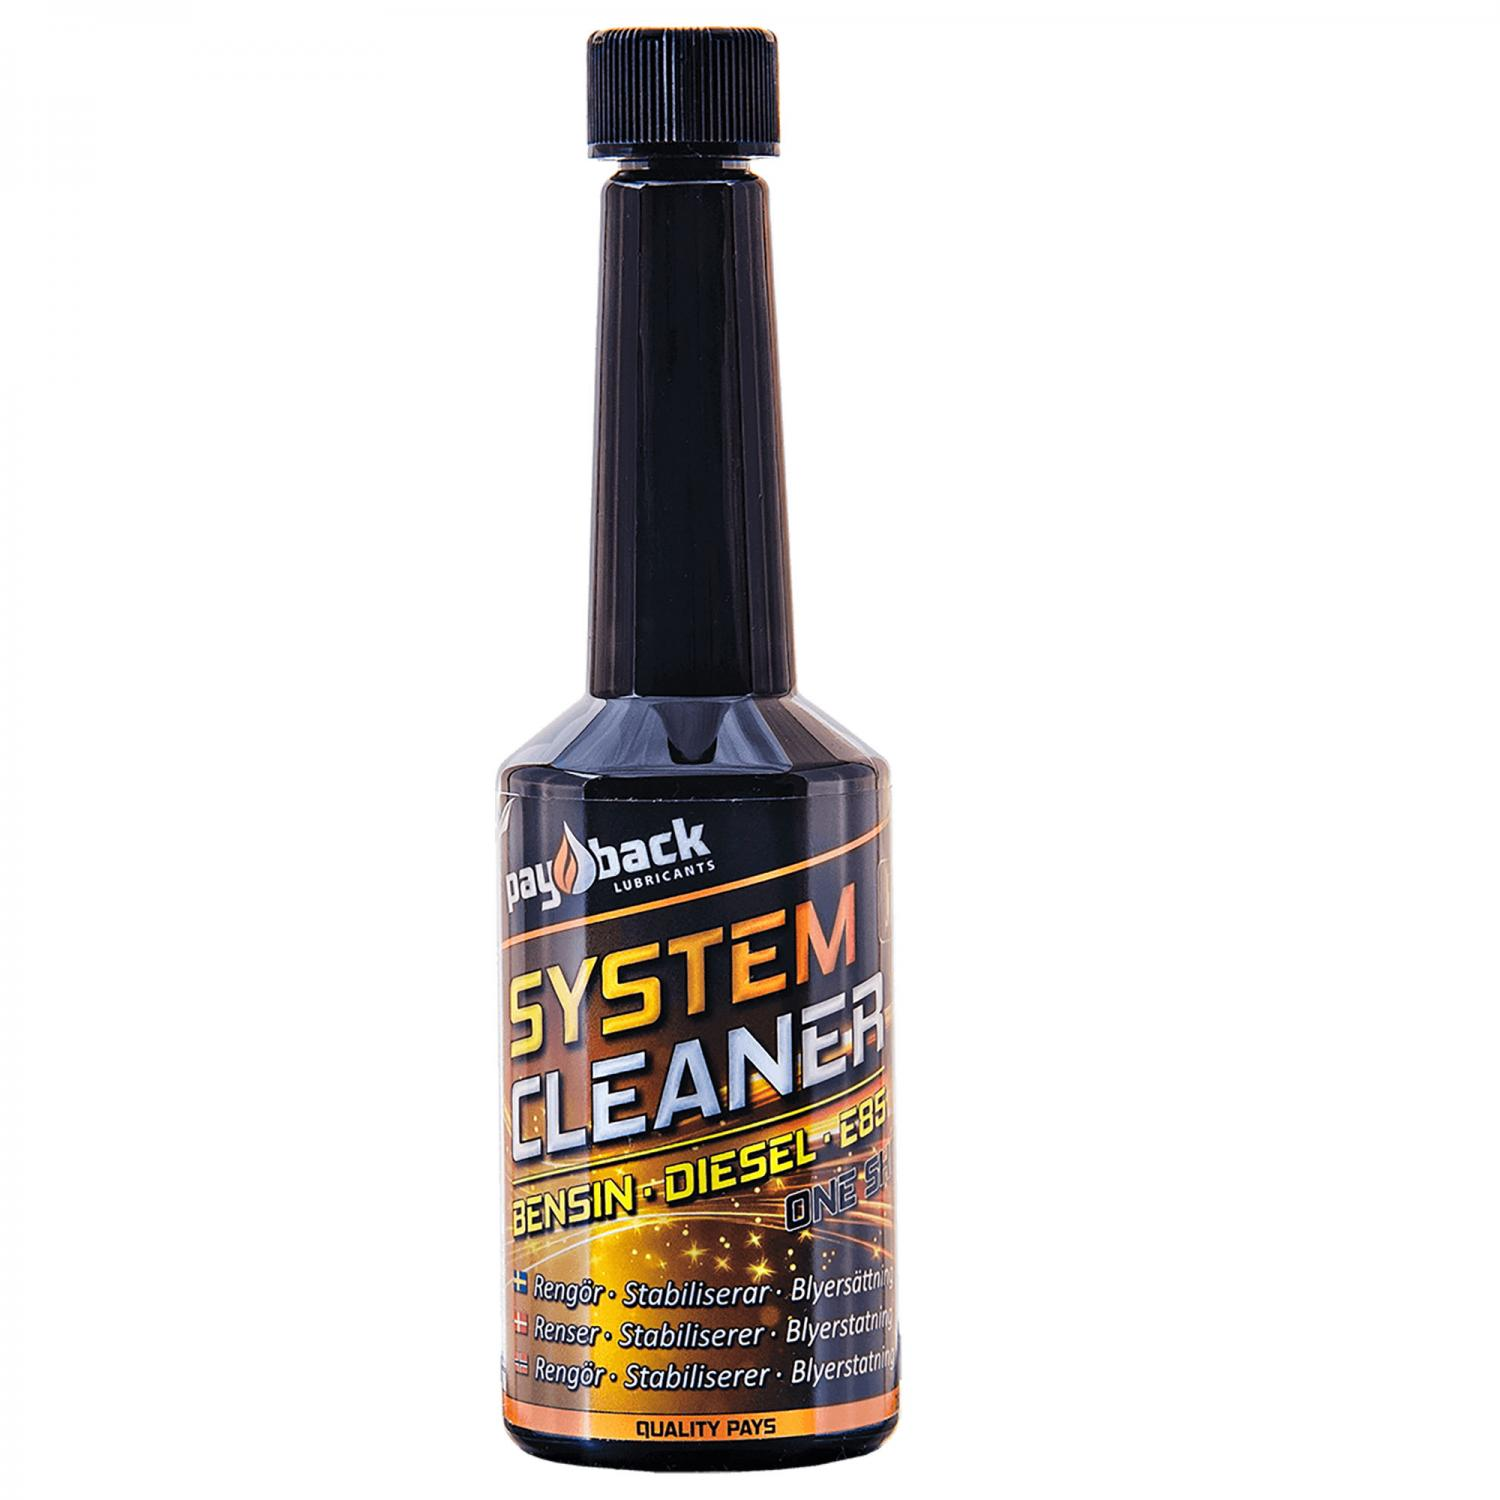 Payback #470 Fuel Cleaner & Stabilizer 250ml